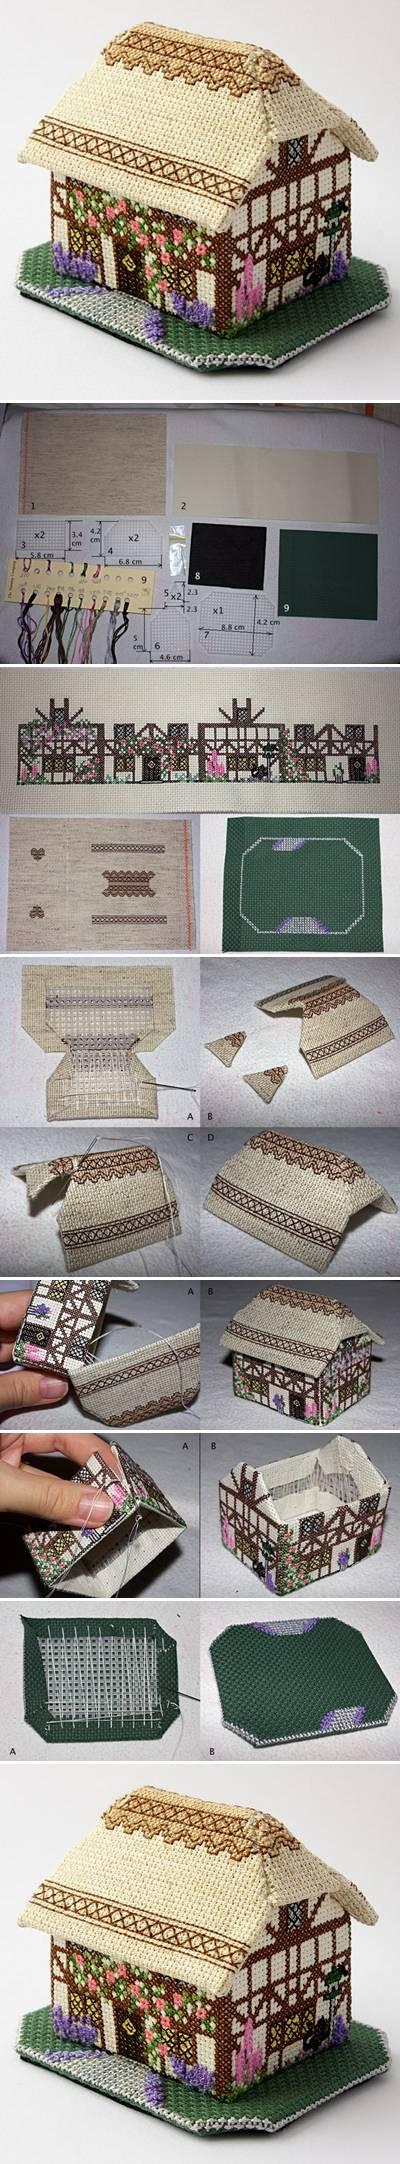 How To Make Decorative Fabric House step by step DIY tutorial instructions